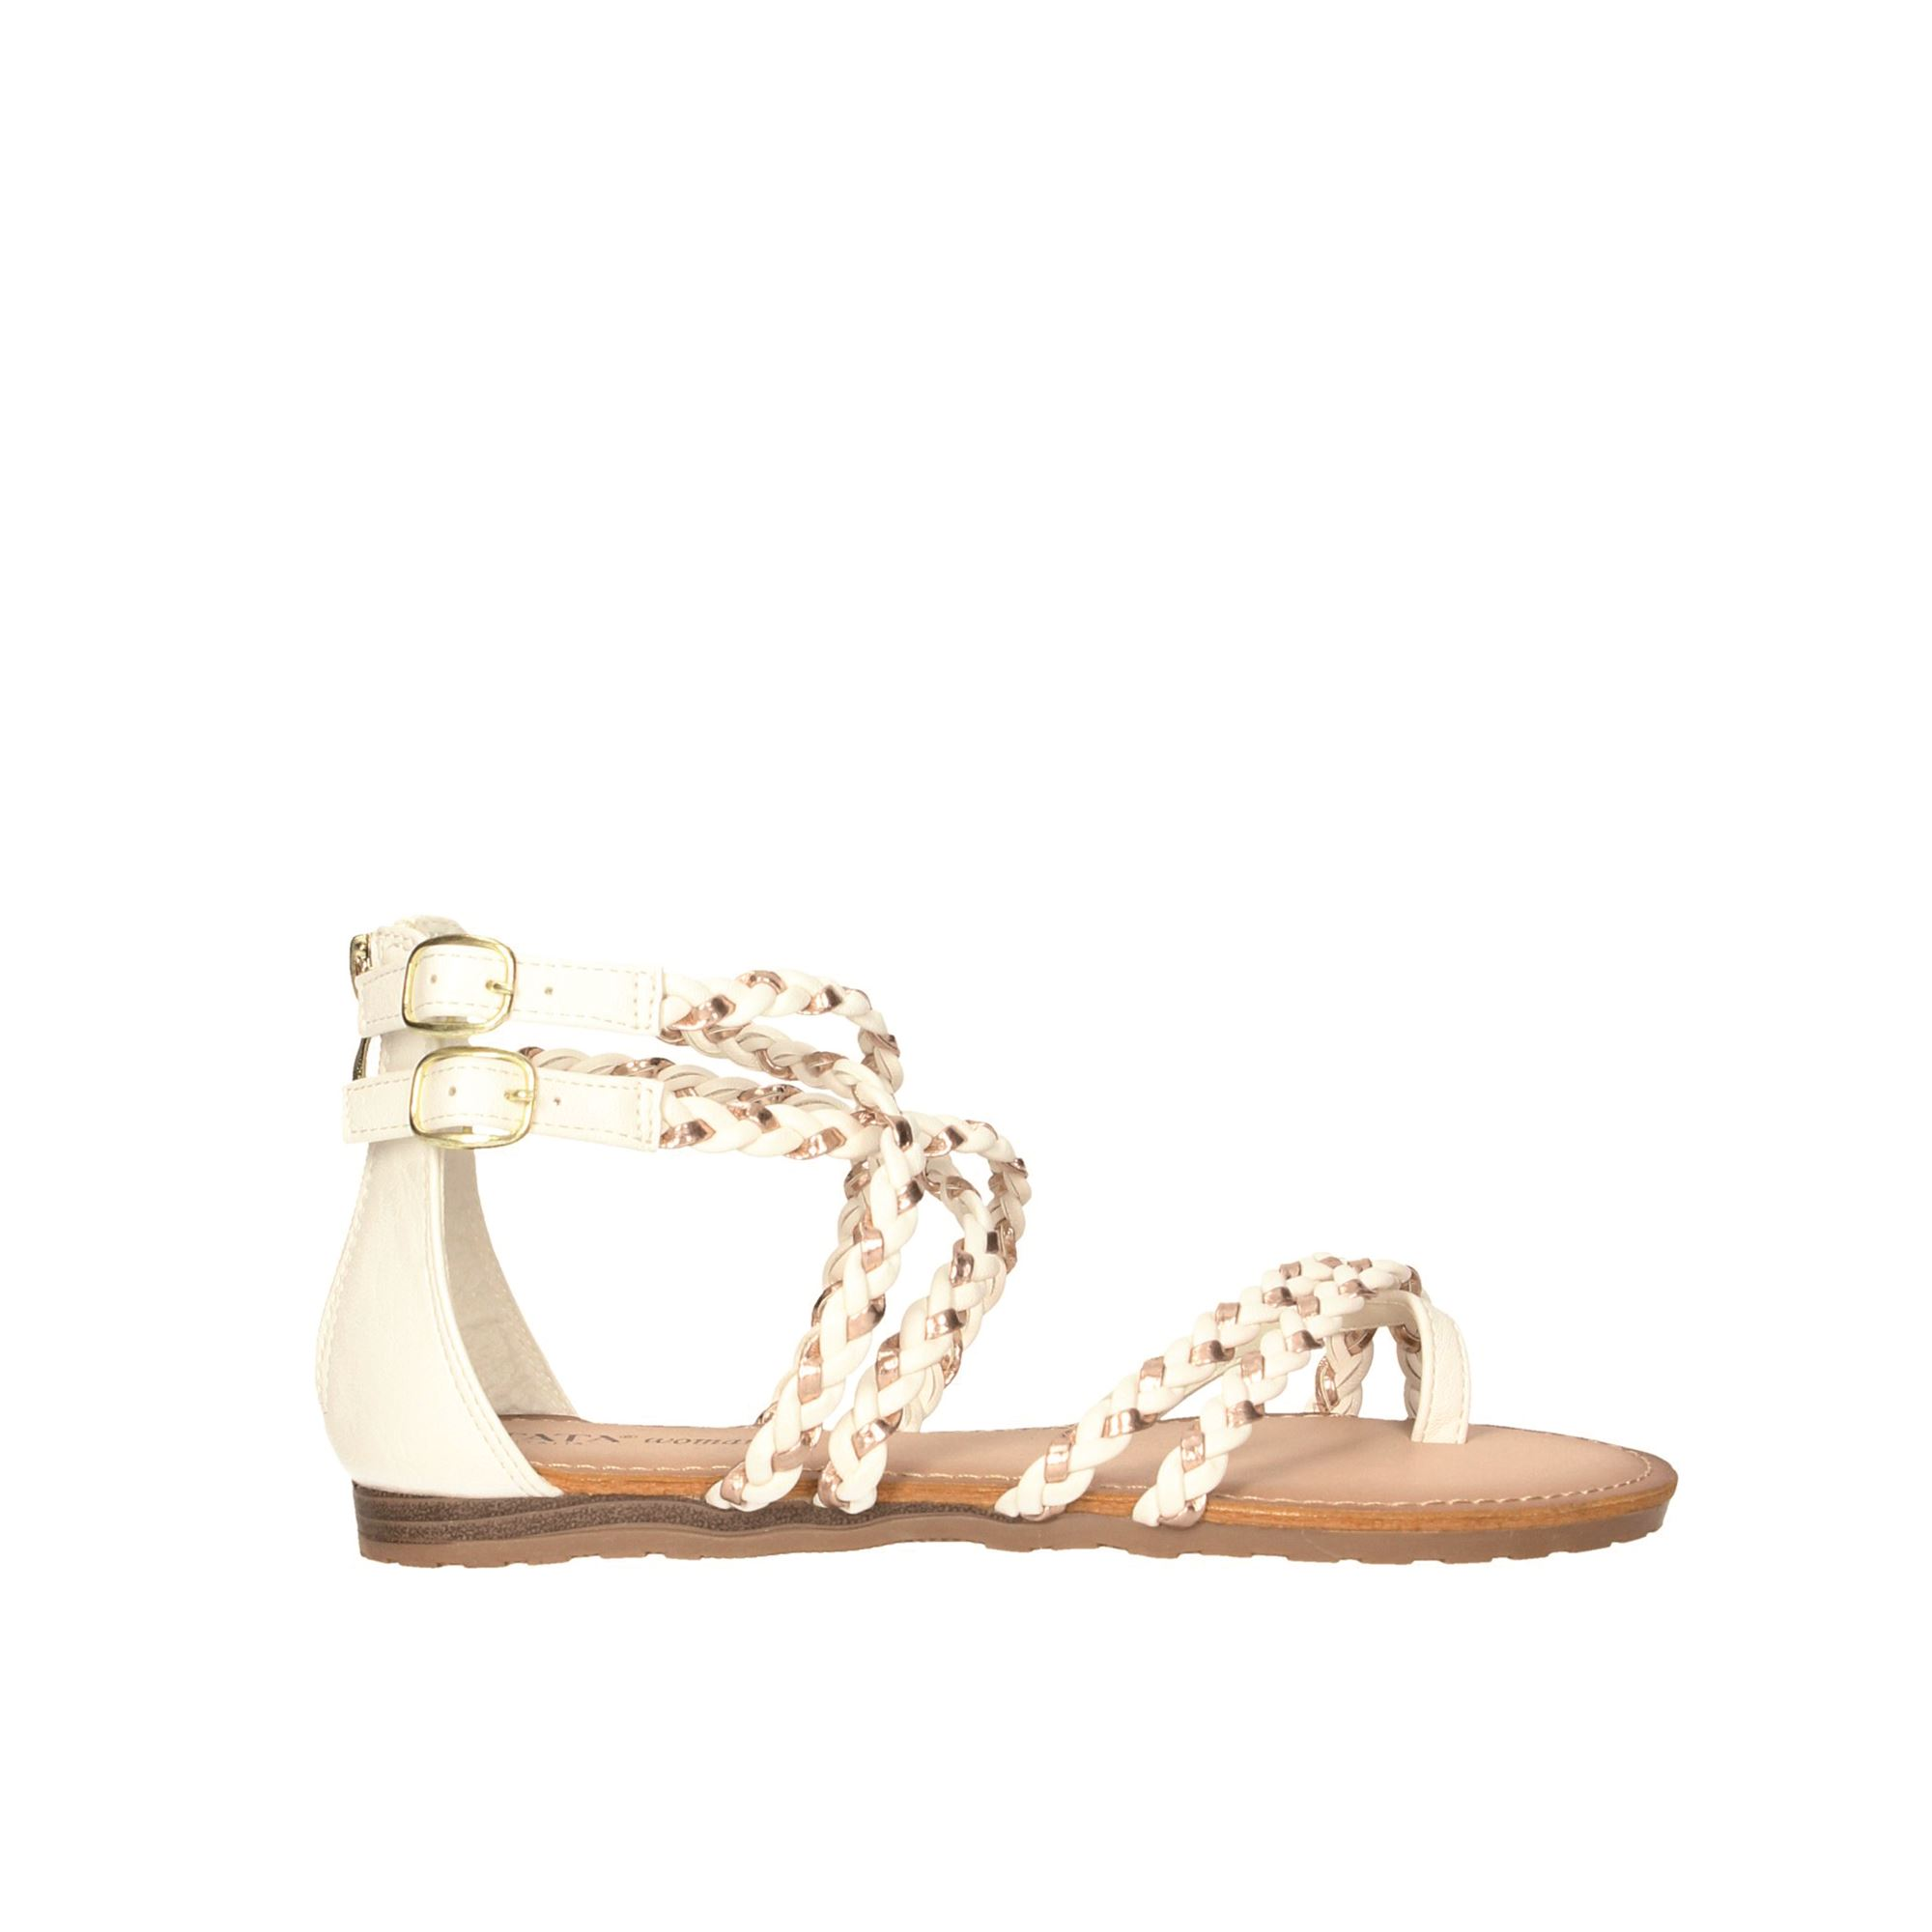 Tata Italia Shoes Woman Sandali White/rose/gold 6211